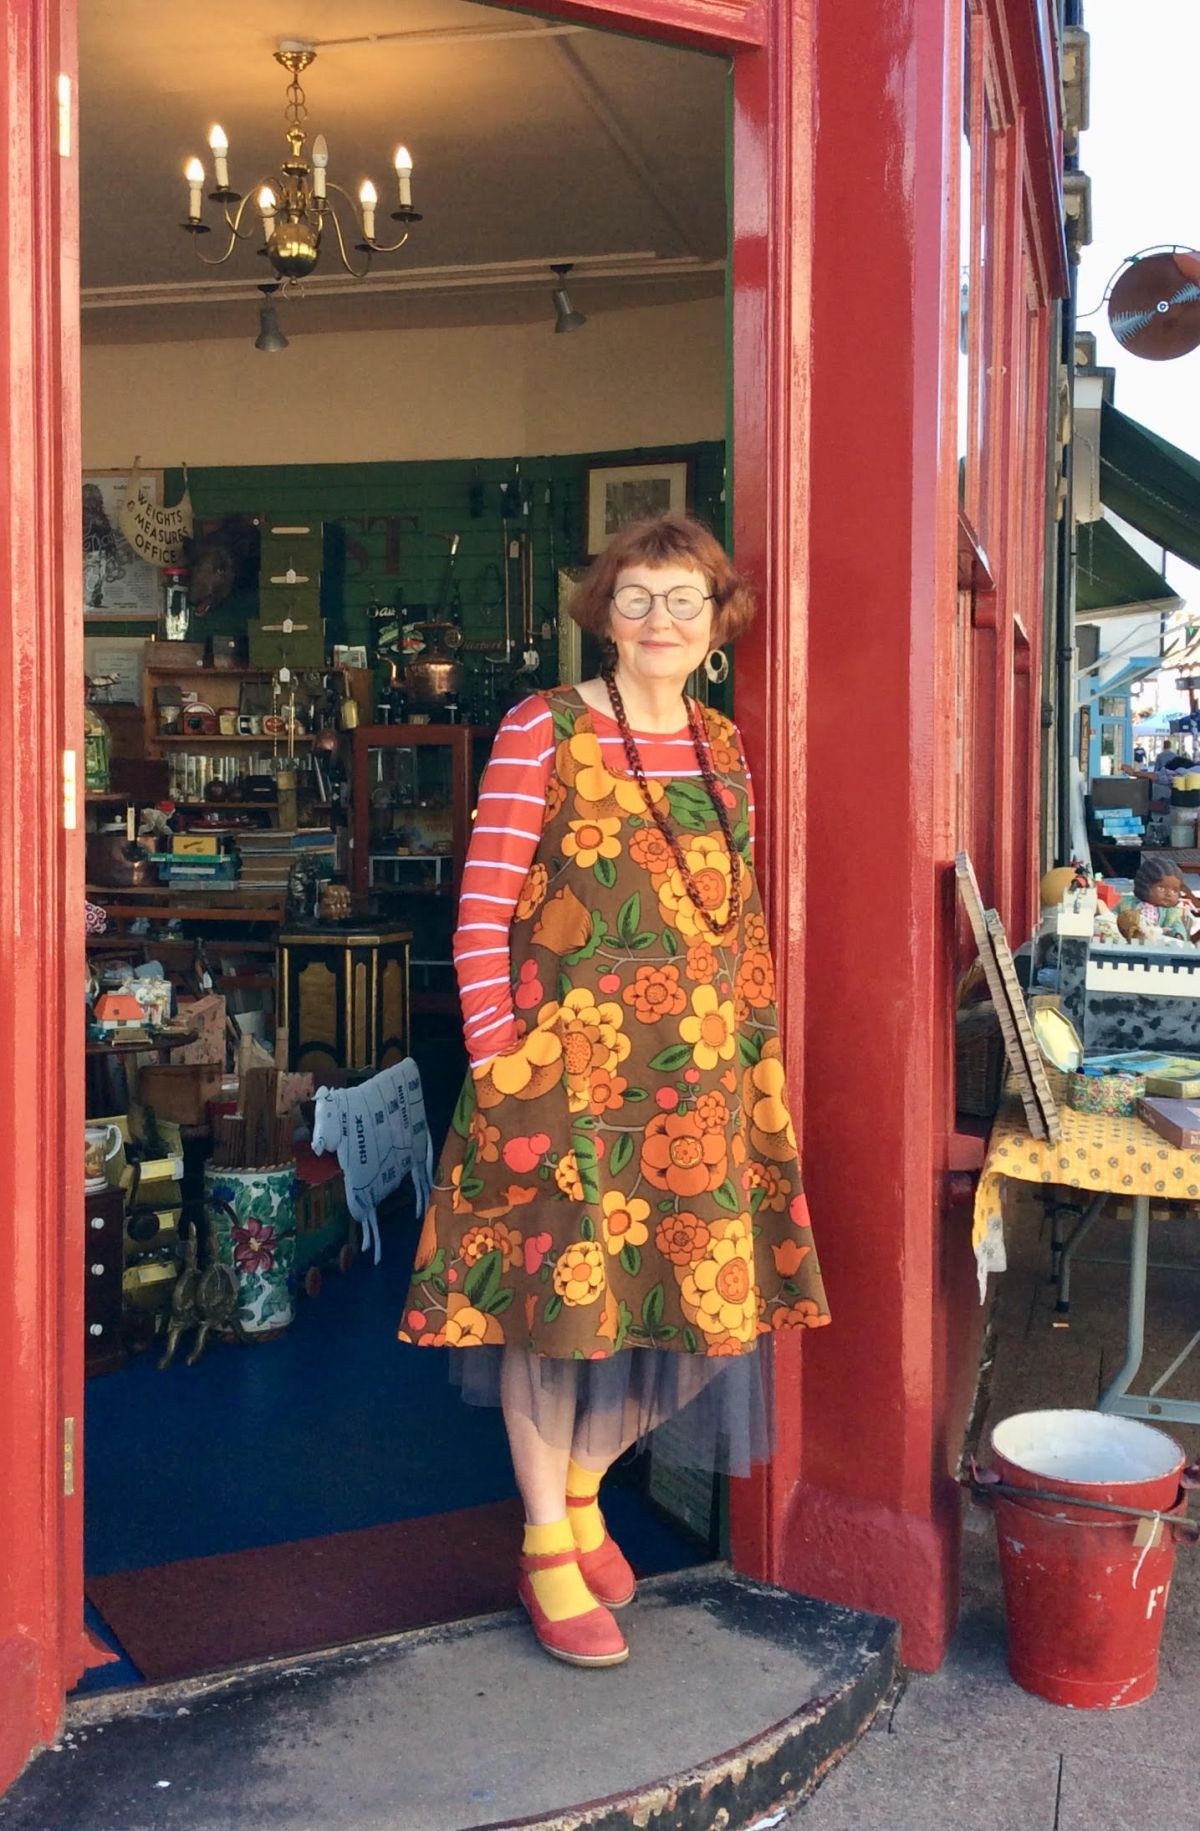 Marcia stands in the doorway to an antique shop. She has short brownish-red hair and wears glasses. She is wearing an A-line pinafore dress with a 1970s design. The colors on her dress are brown, yellow, green, orange, and red. She is wearing a red and white striped shirt and a long necklace as well. On her feet are yellow socks and red mary jane shoes.